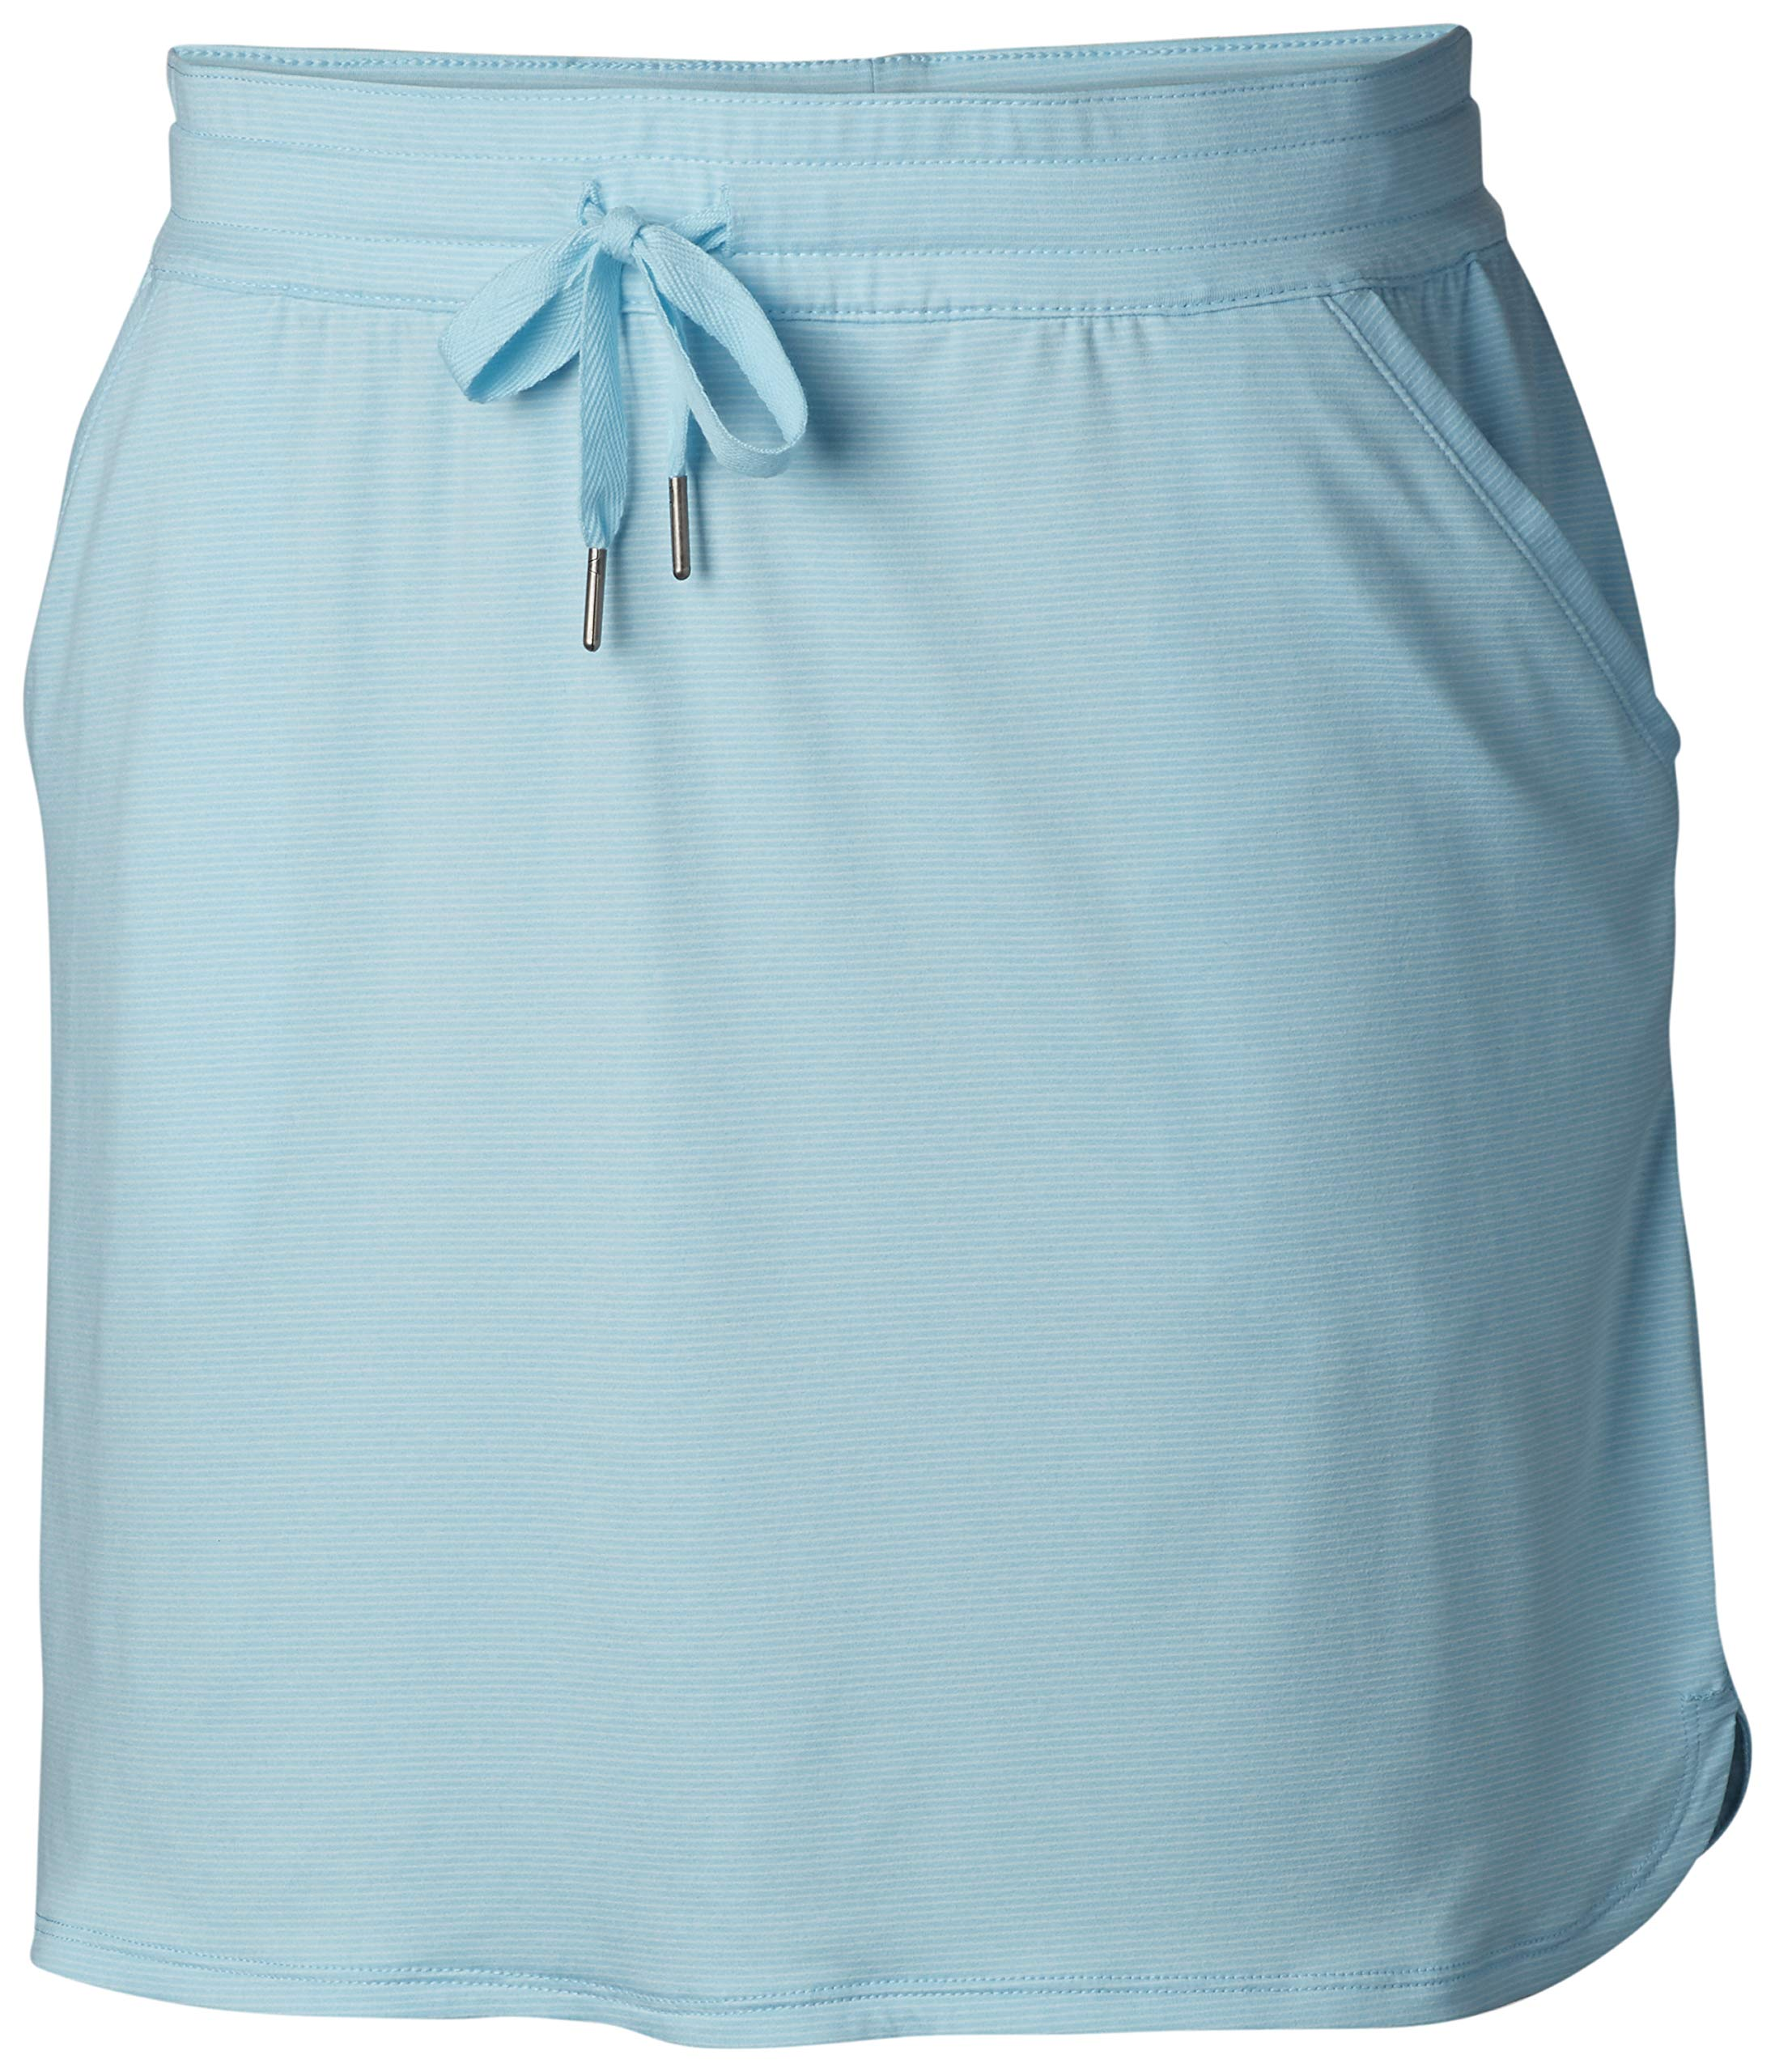 Columbia Women's Reel Relaxed Skirt, Coastal Blue, Small by Columbia